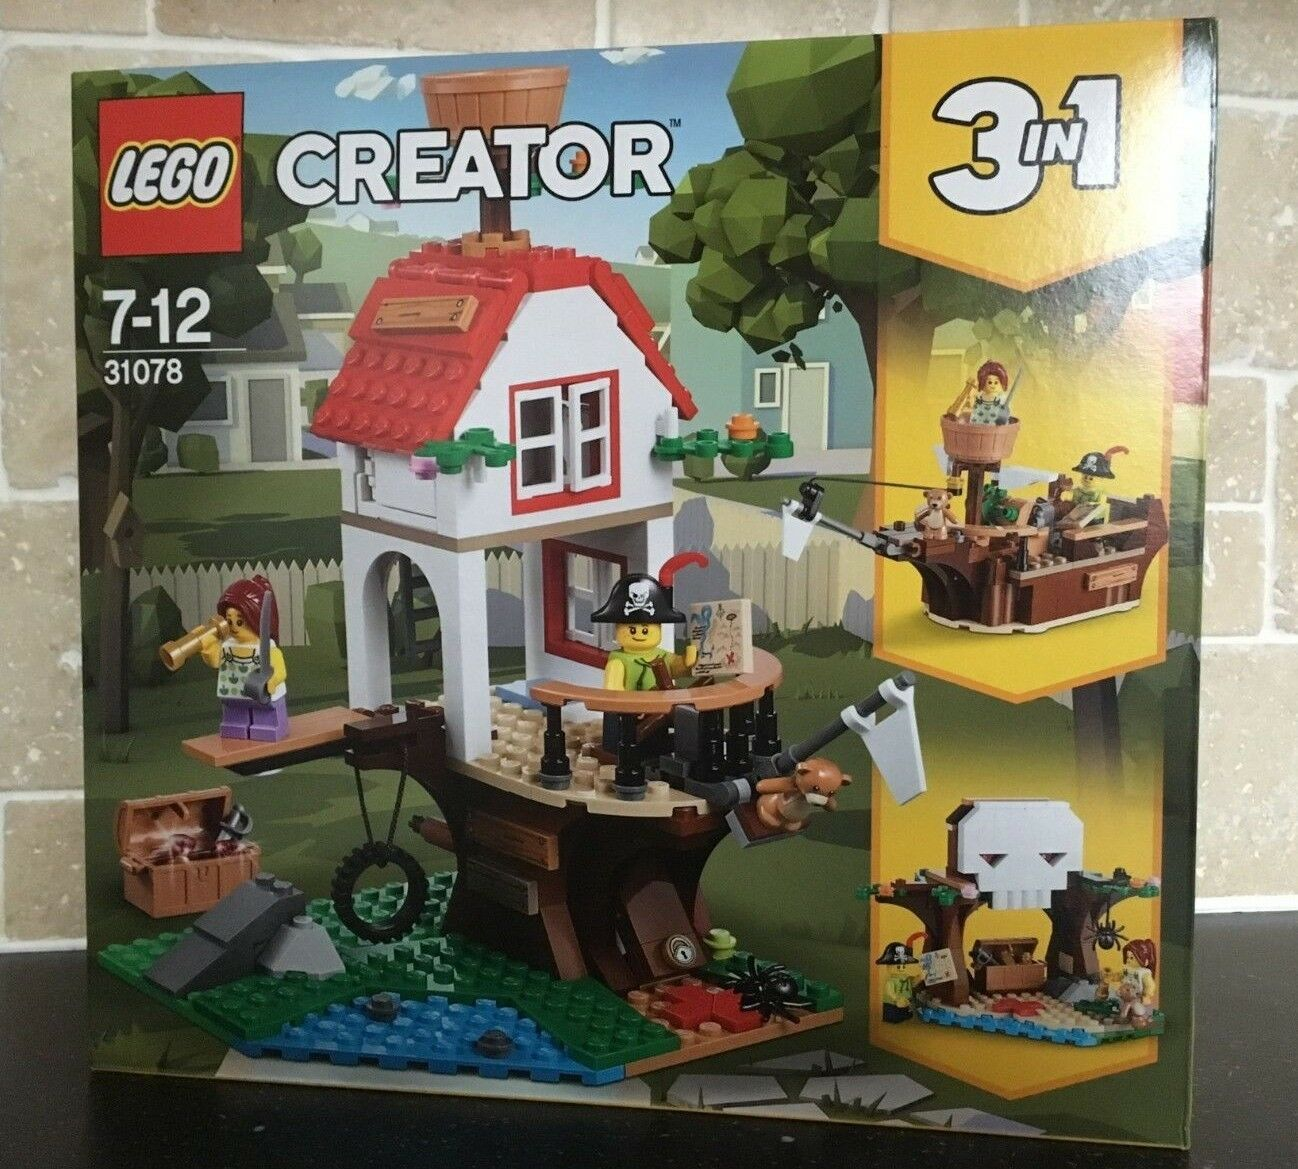 LEGO CREATOR - 31078 31078 31078 Tree House Treasures (3 in1) Brand New In Sealed Box 365c16